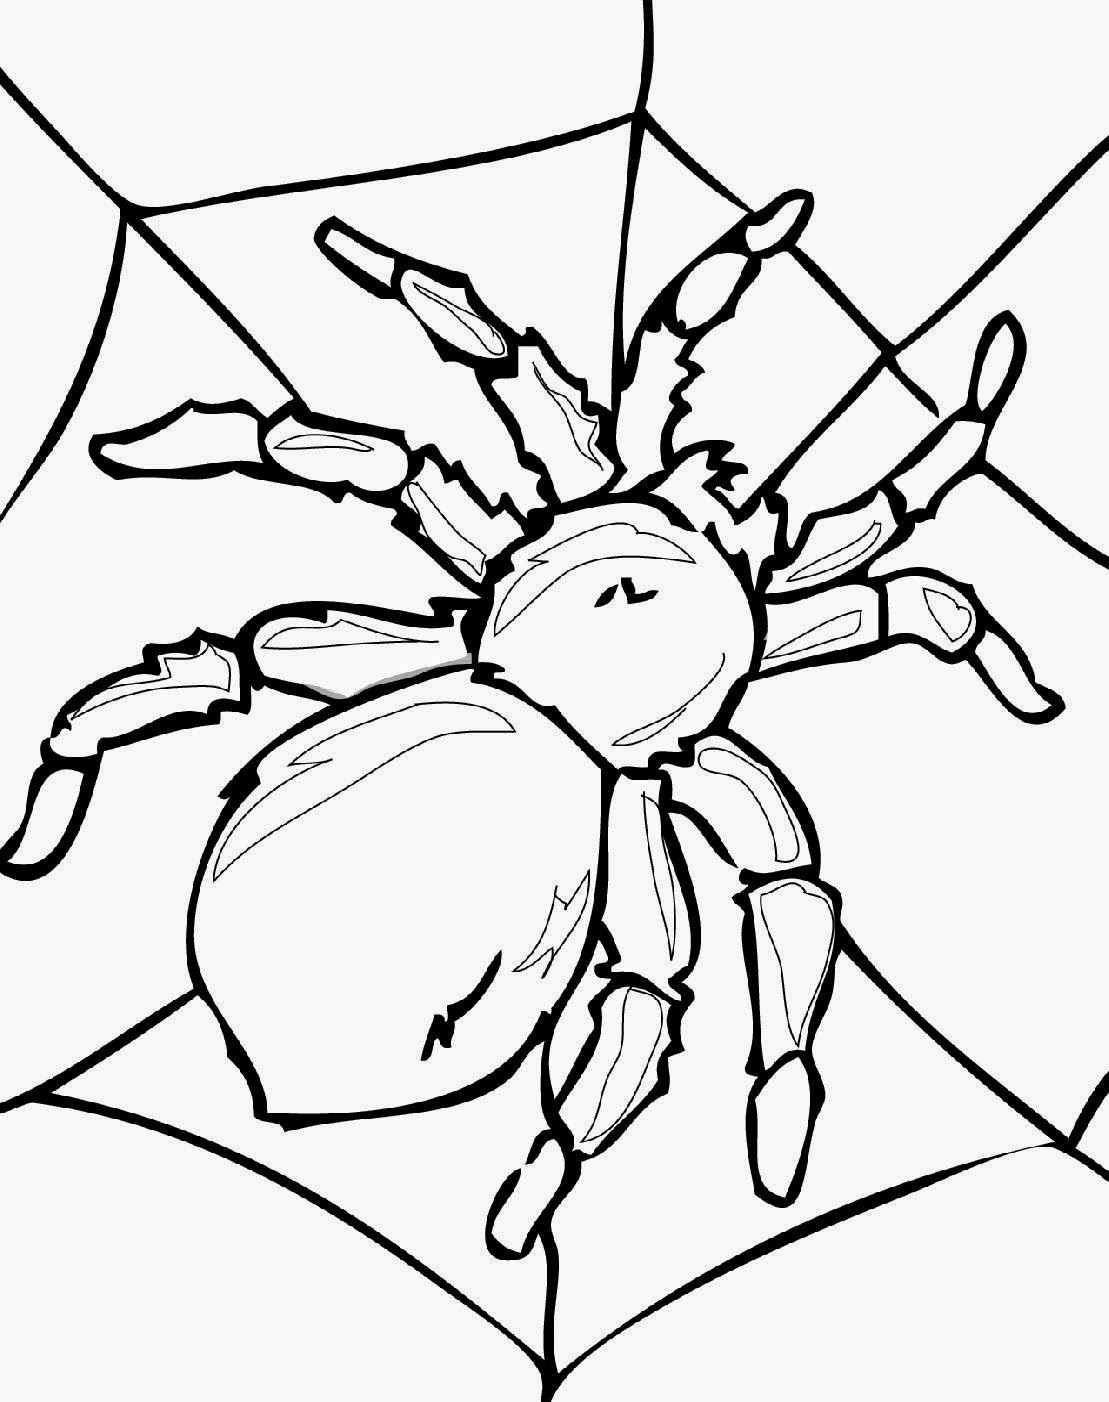 bug pictures to color bugs coloring pages neo coloring to bug pictures color